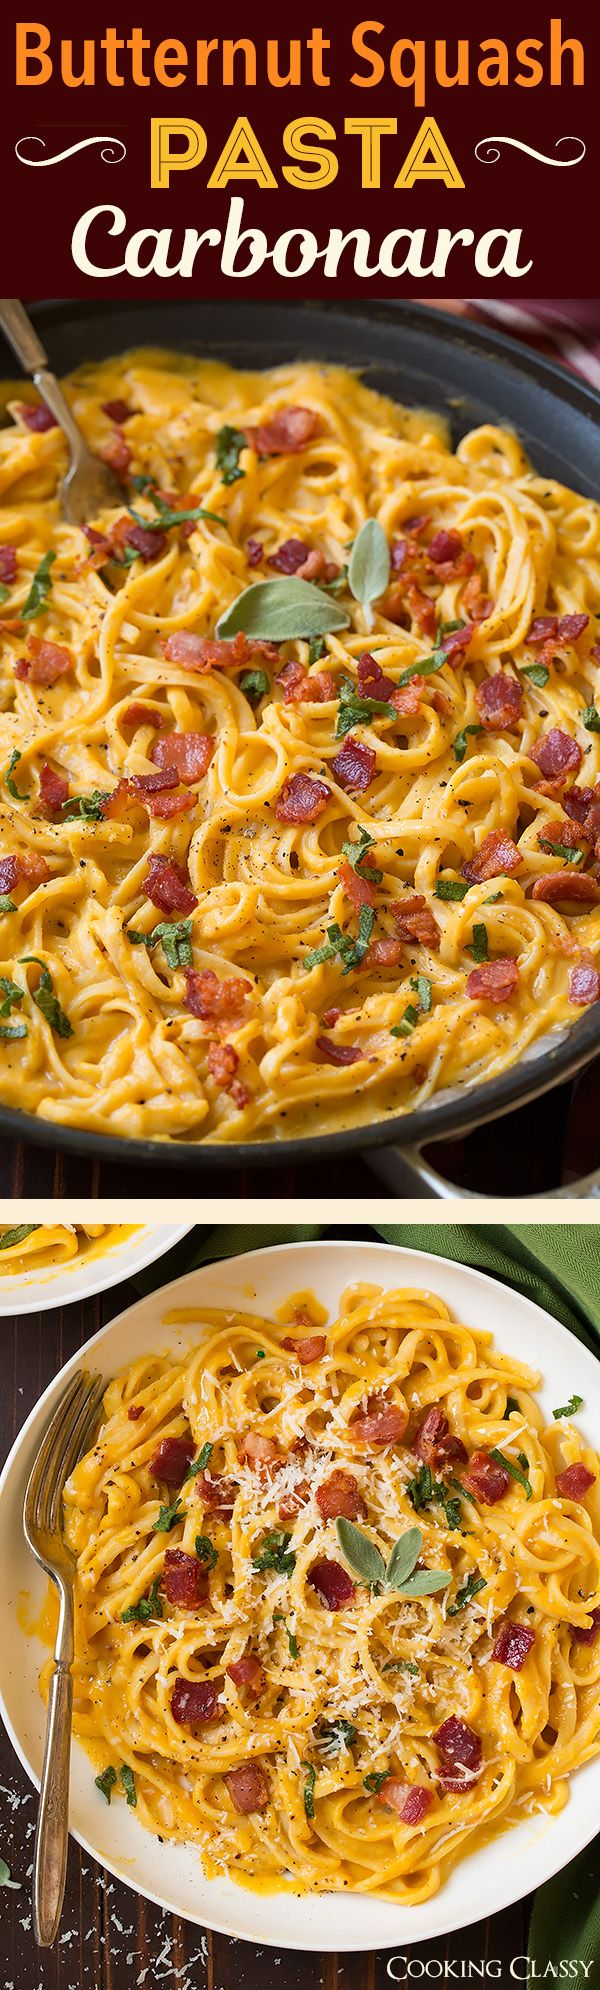 Butternut Squash Pasta Carbonara - this was delicious! Perfect fall meal! WWW.EVOKINGGRACE.COM                                                                                                                                                                                 More